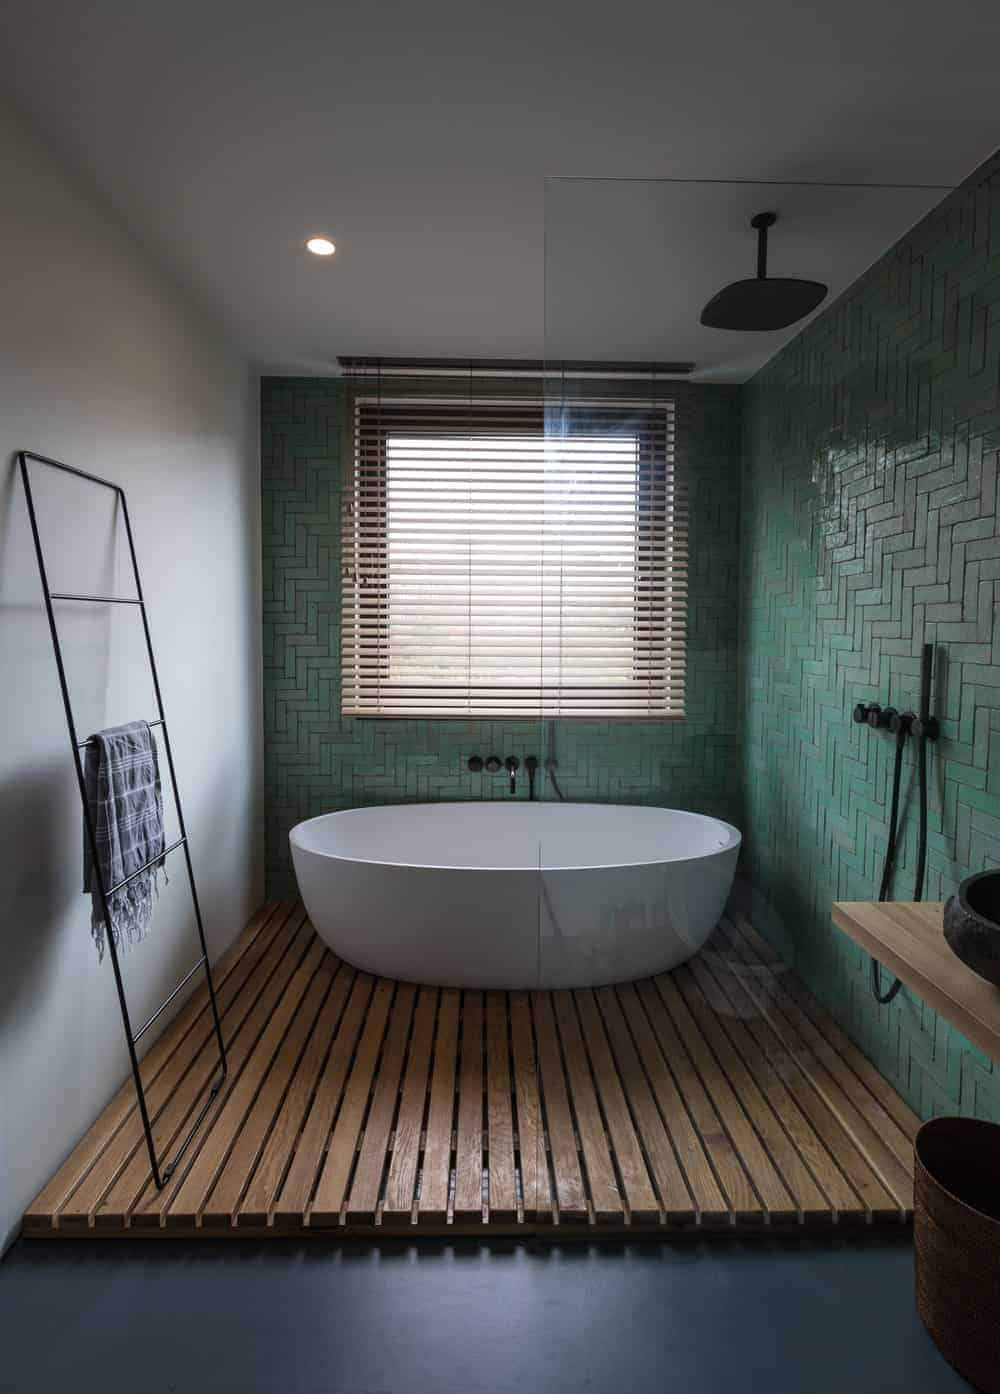 This bathroom has a wooden flooring for the freestanding bathtub and the shower area beside it with black fixtures. These are then complemented by the green tiles on the walls.